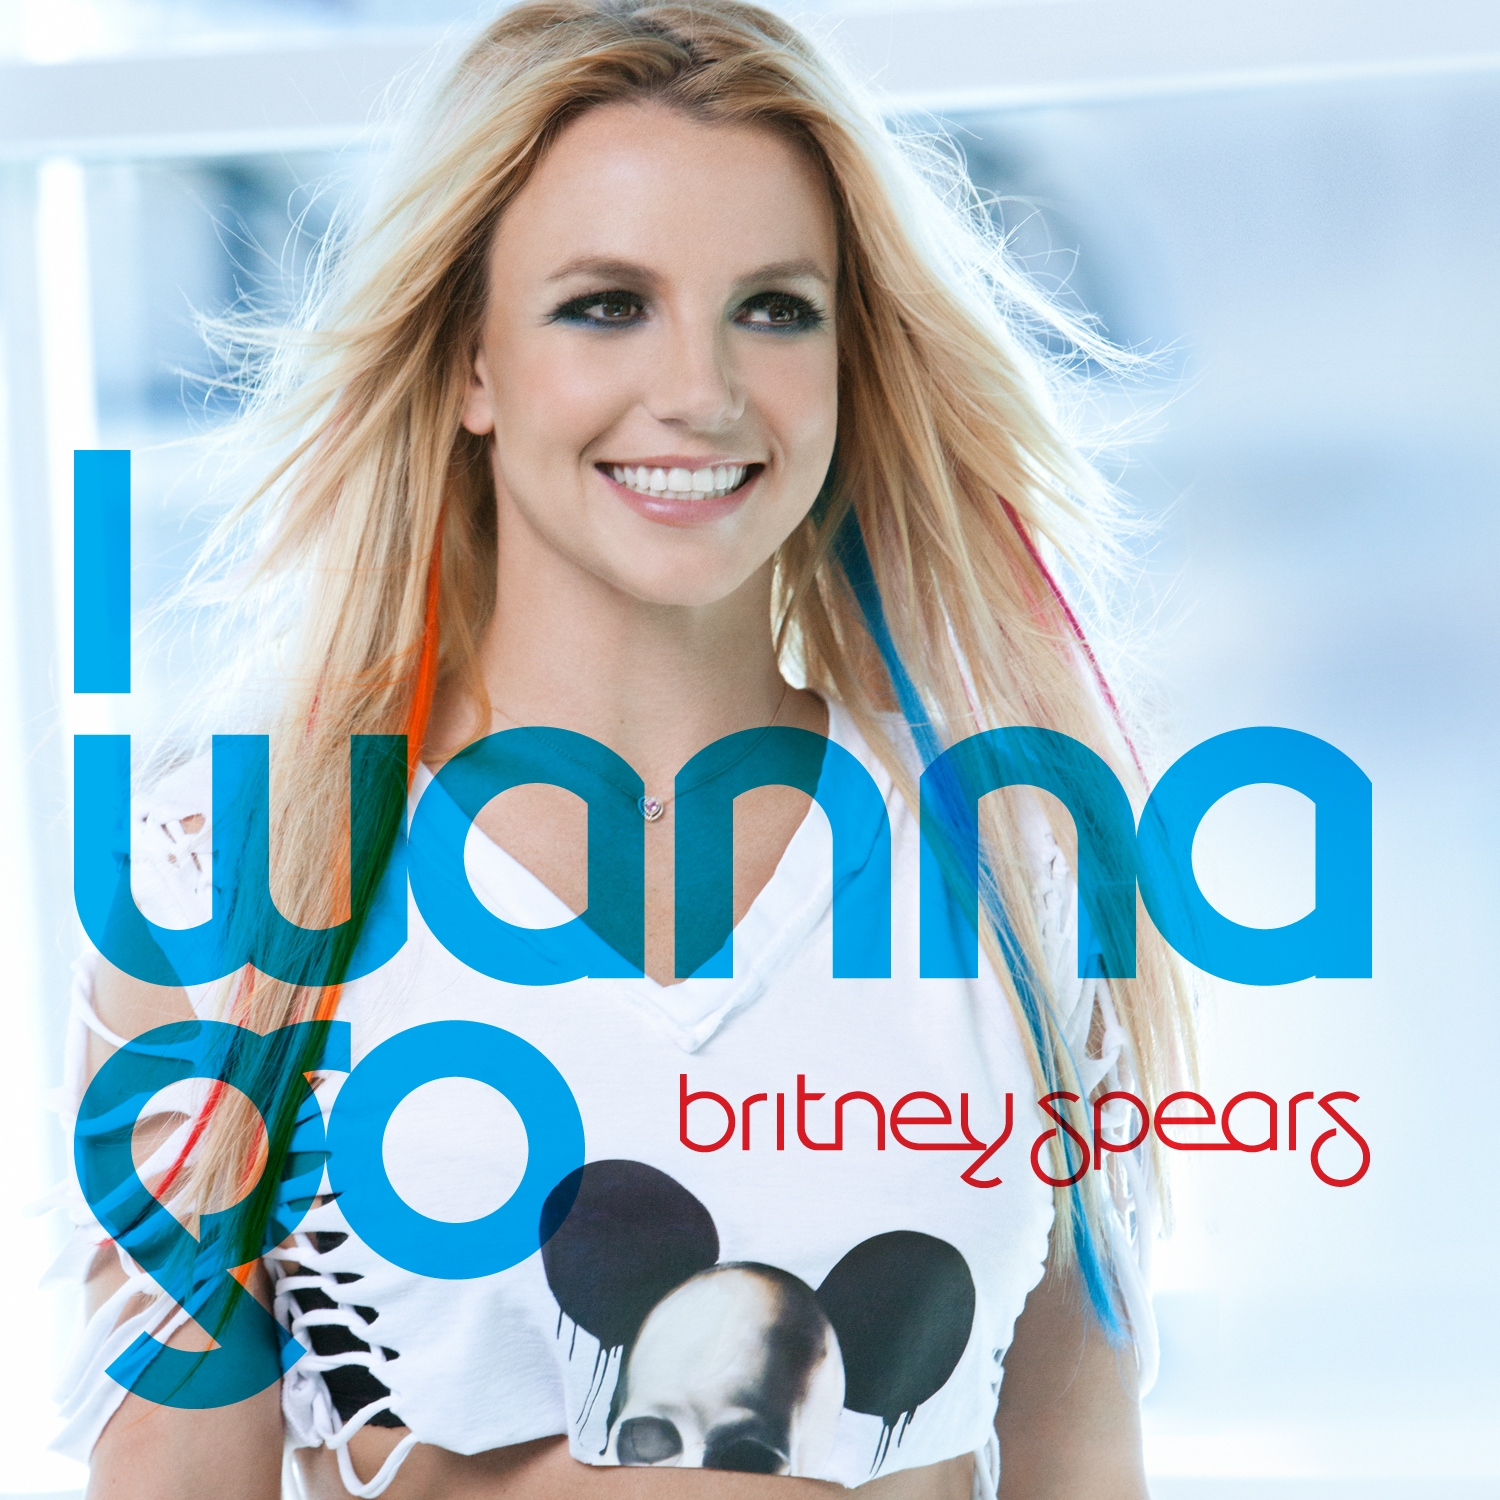 http://4.bp.blogspot.com/-RMrLYjpYW_Q/Te978p_gHSI/AAAAAAAAIQI/n2TAPYHWBmo/s1600/CAPA+I+Wanna+Go+%2528Official+Single+Cover%2529.jpeg